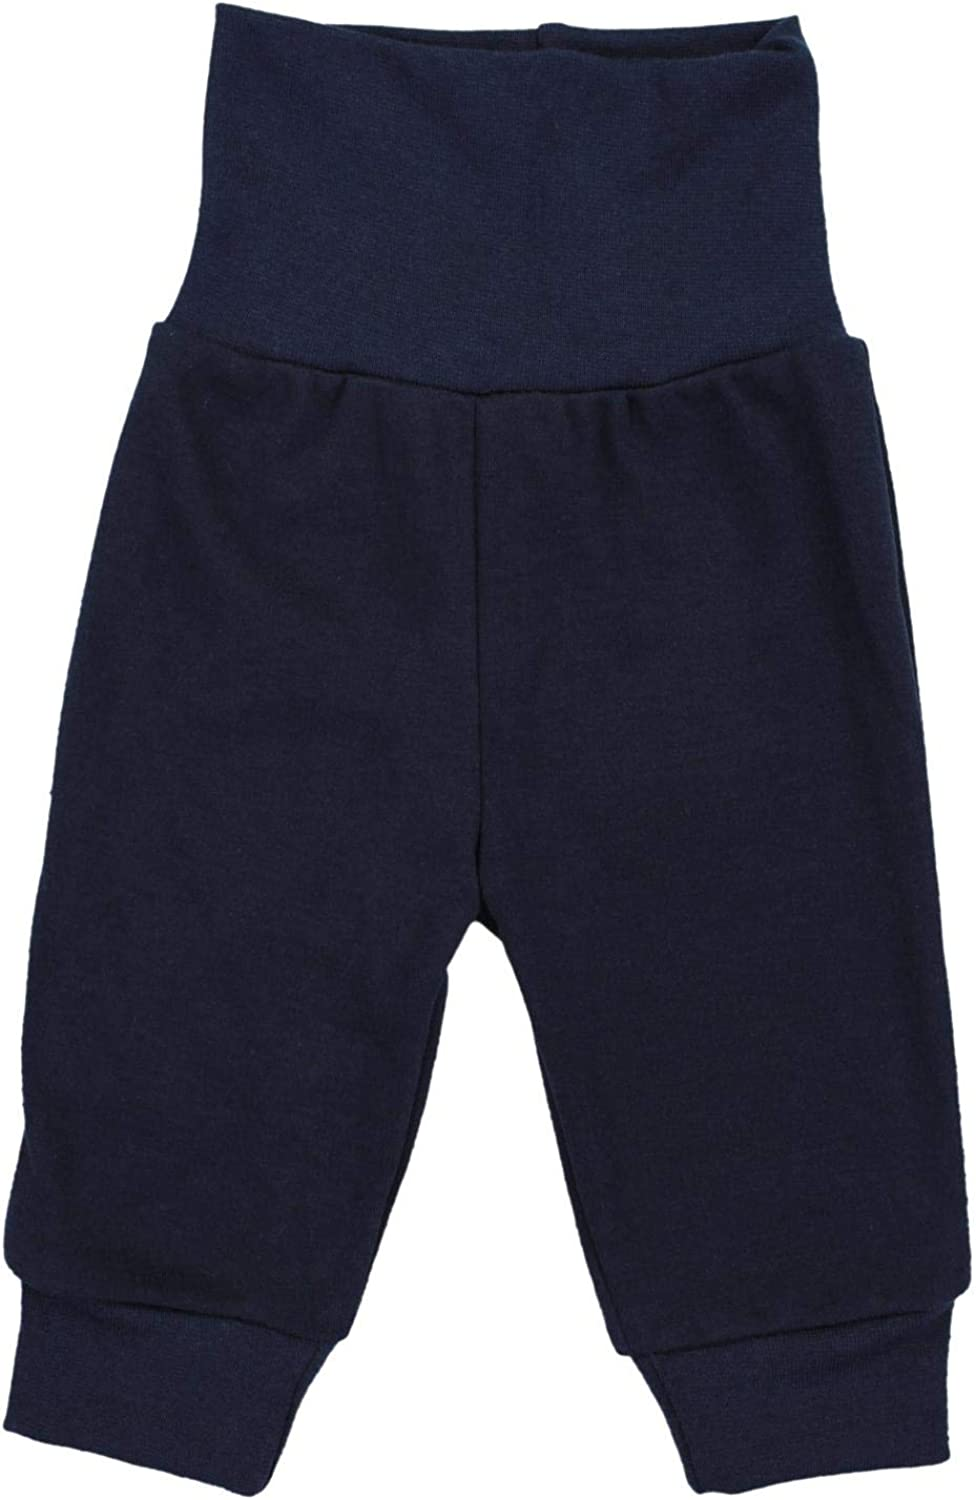 TupTam Baby Unisex Summer Shorts Pack of 3